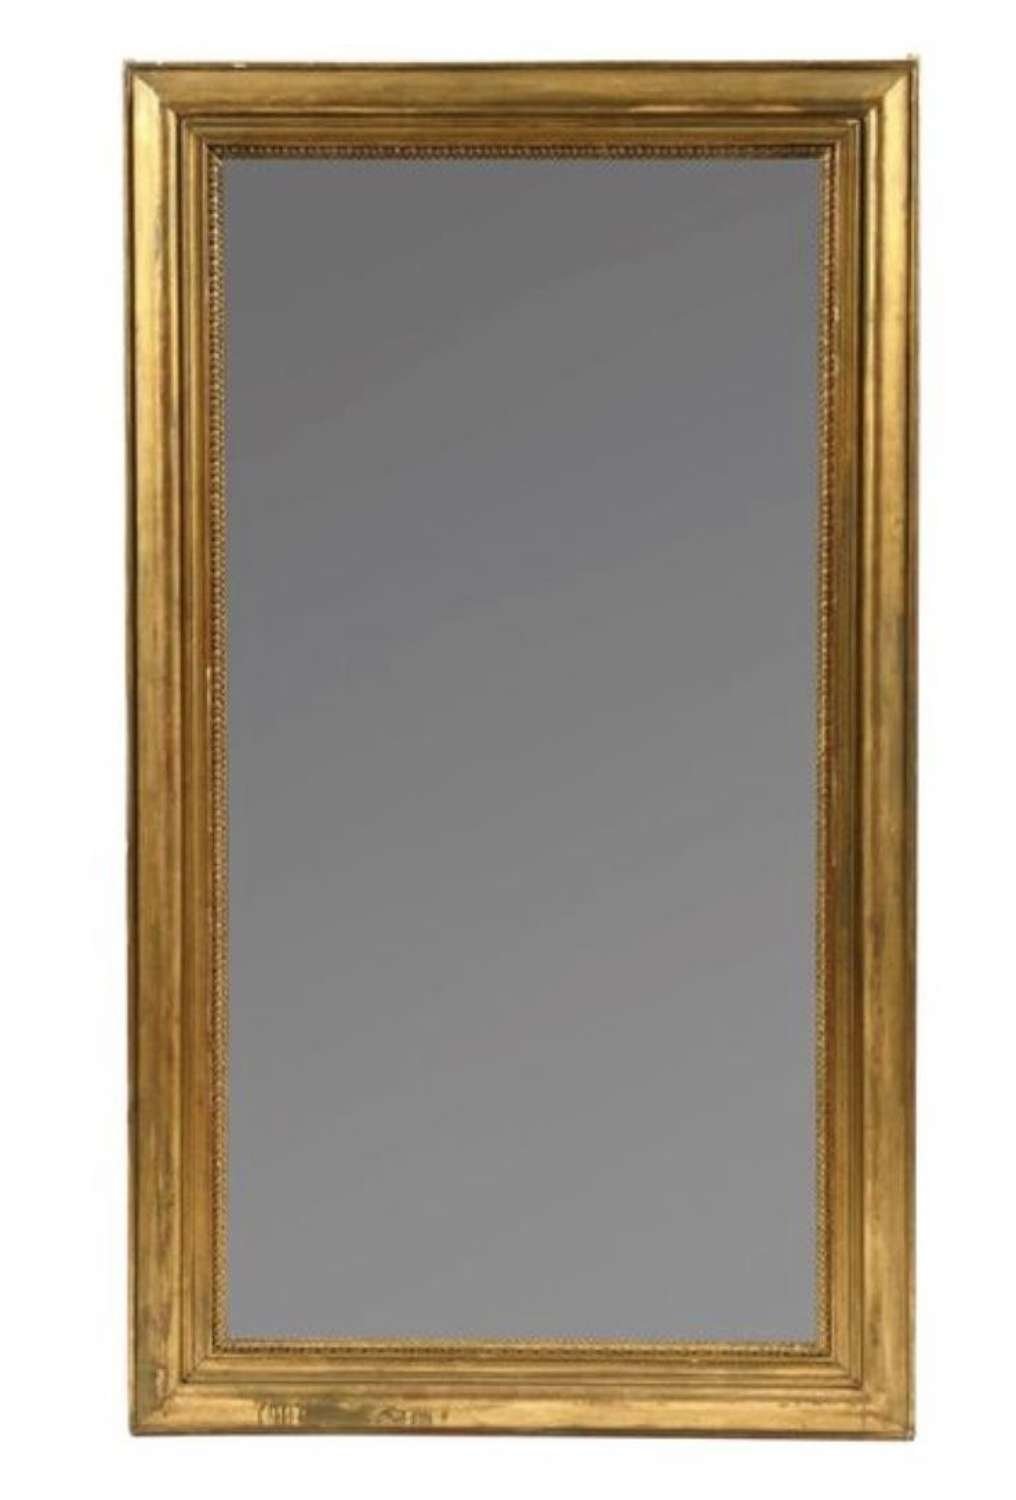 A 19TH CENTURY GILT MIRROR,FRANCE C 1830